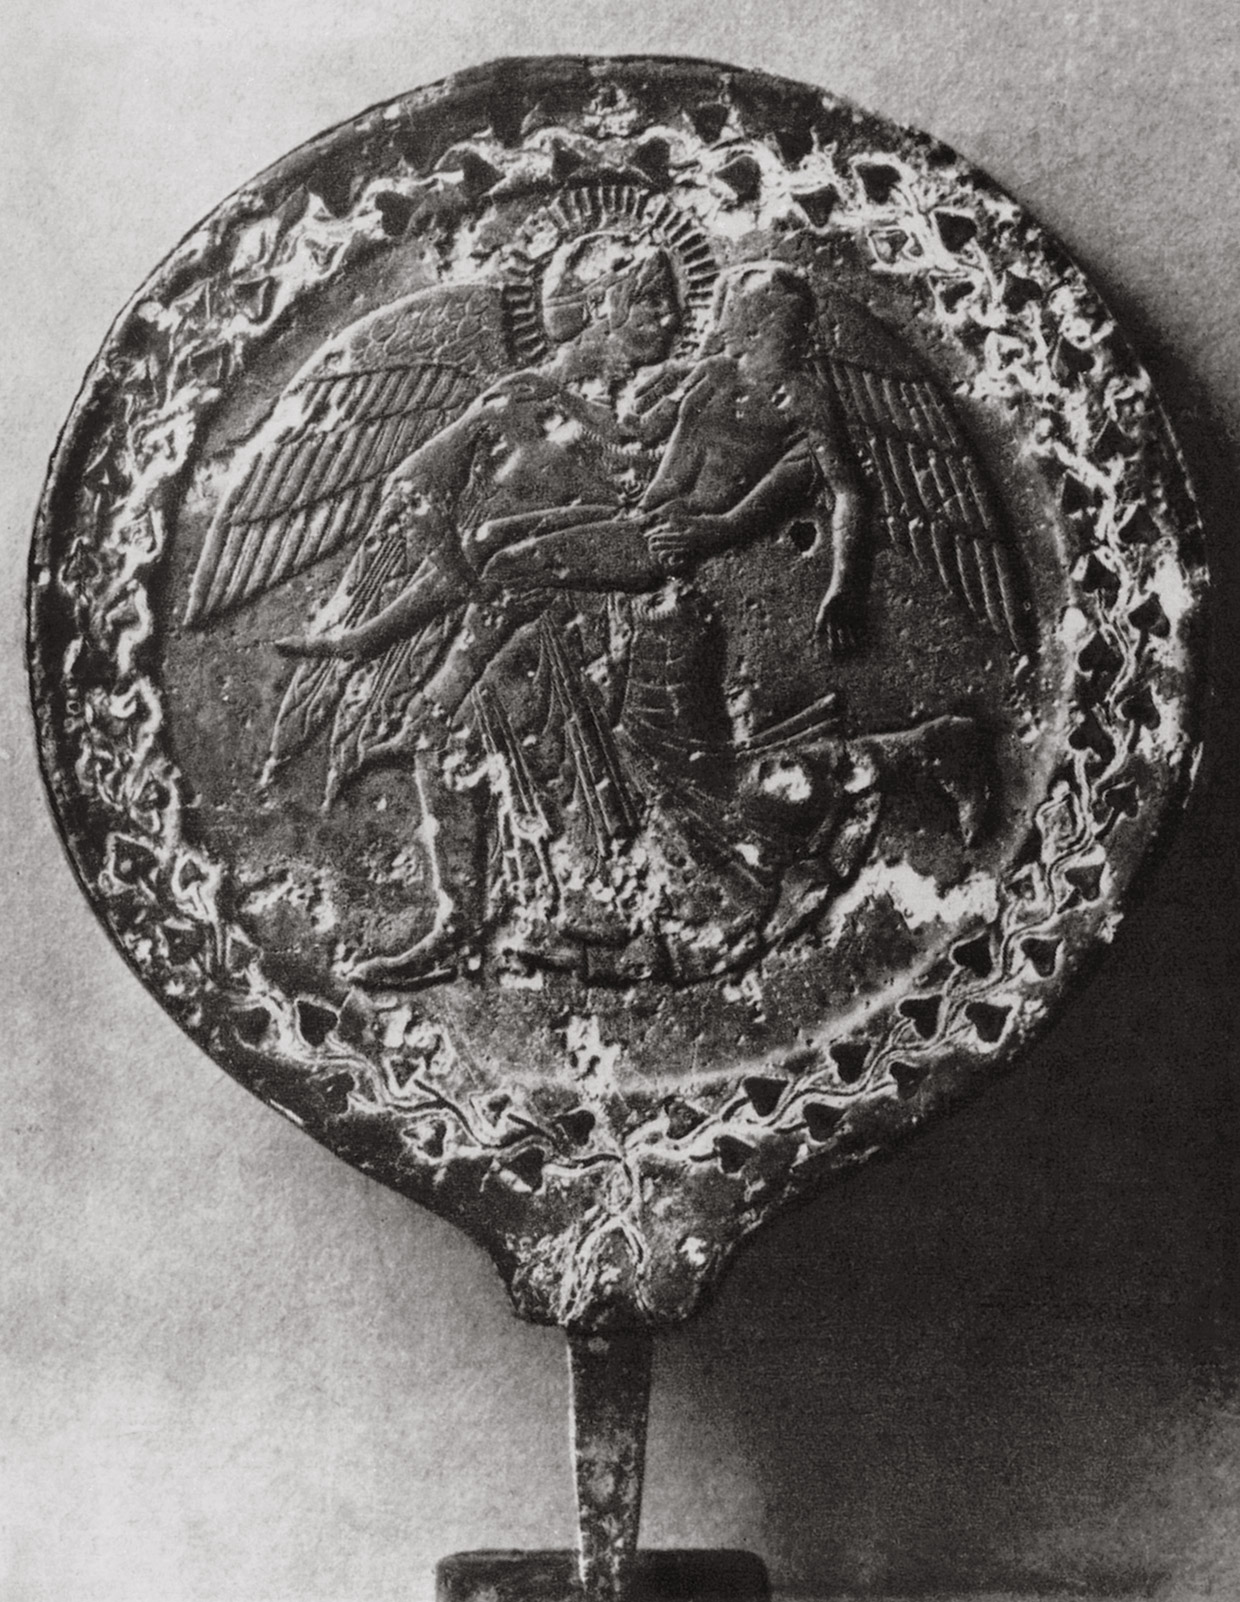 Winged Eos, bearing Cephalus in her arms. Mirror with a relief adornment. Bronze. 5th century BCE. Rome, Vatican Museums